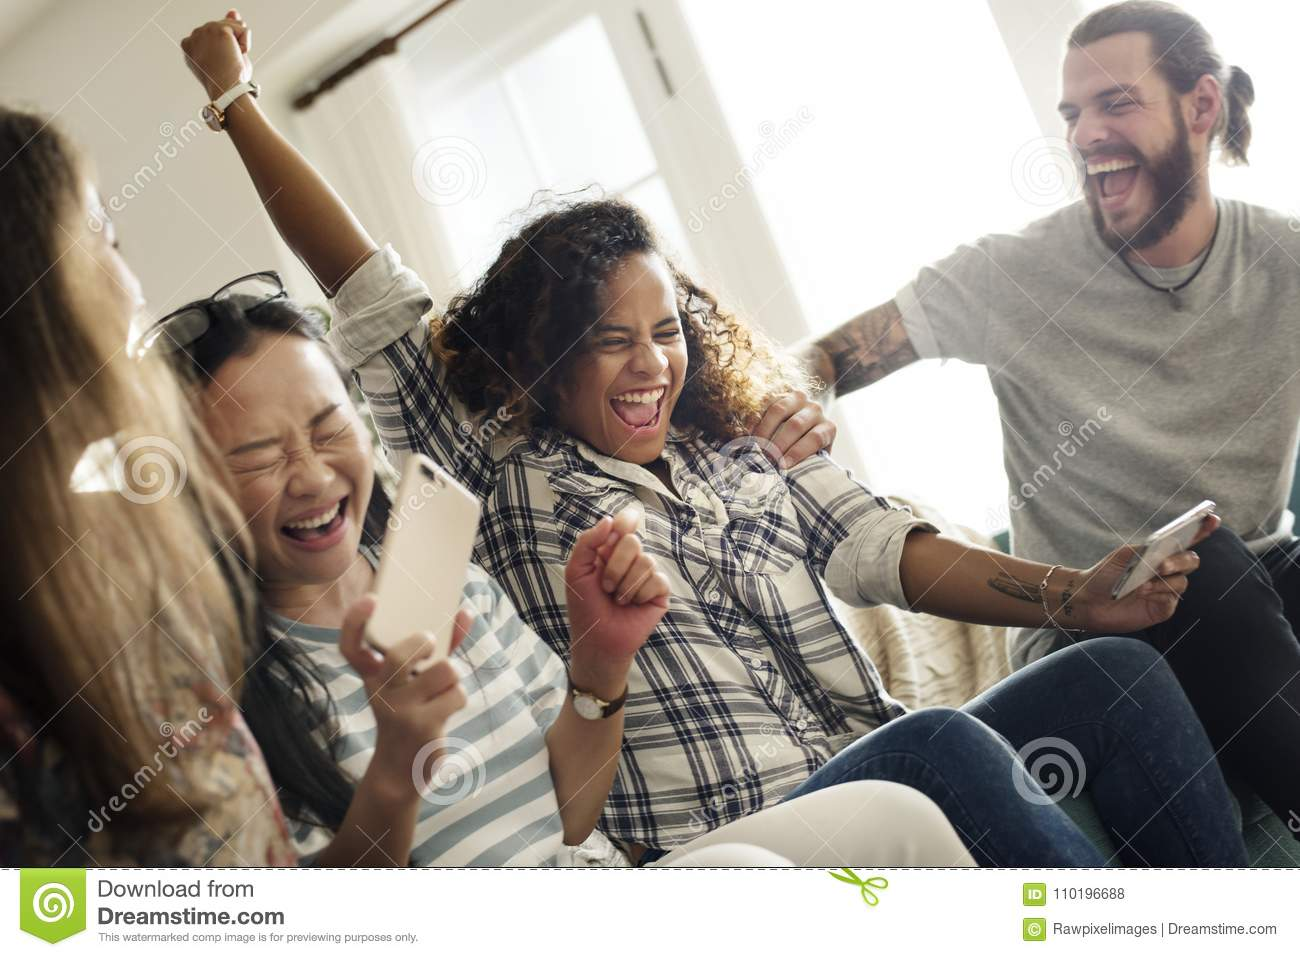 Group of diverse friends playing game on mobile phone